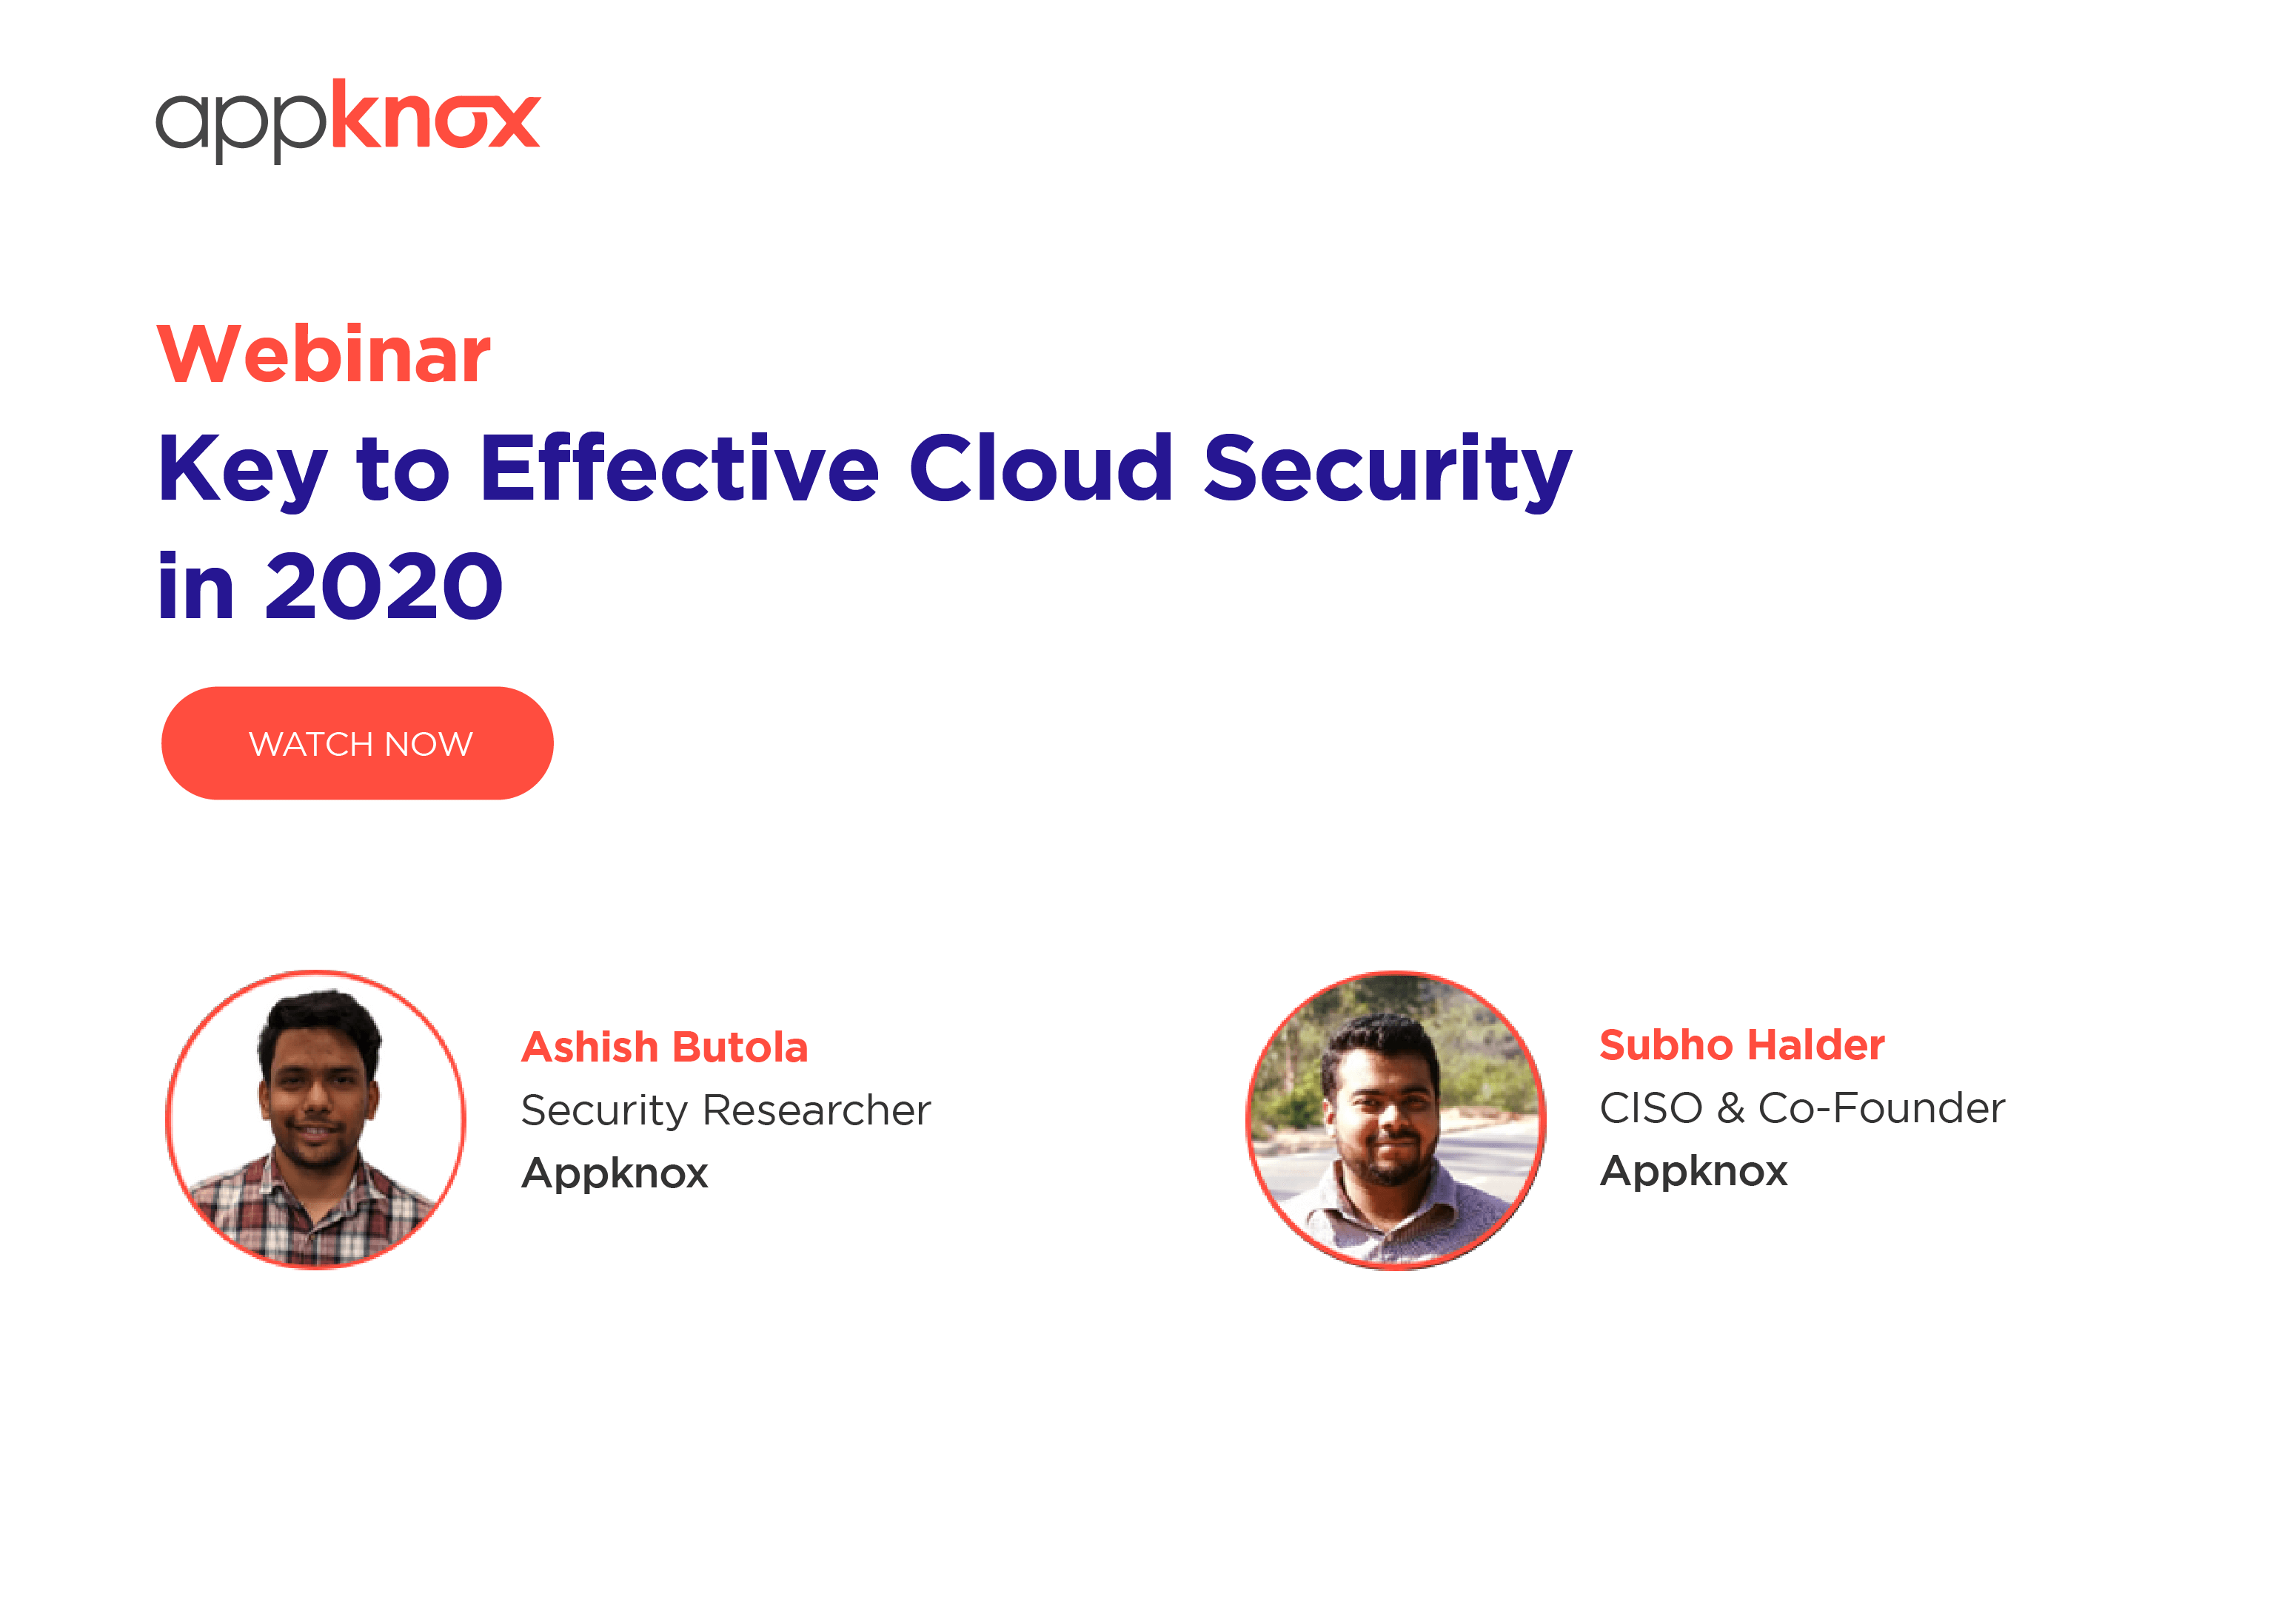 WEBINAR - Key to Effective Cloud Security in 2020 (1)